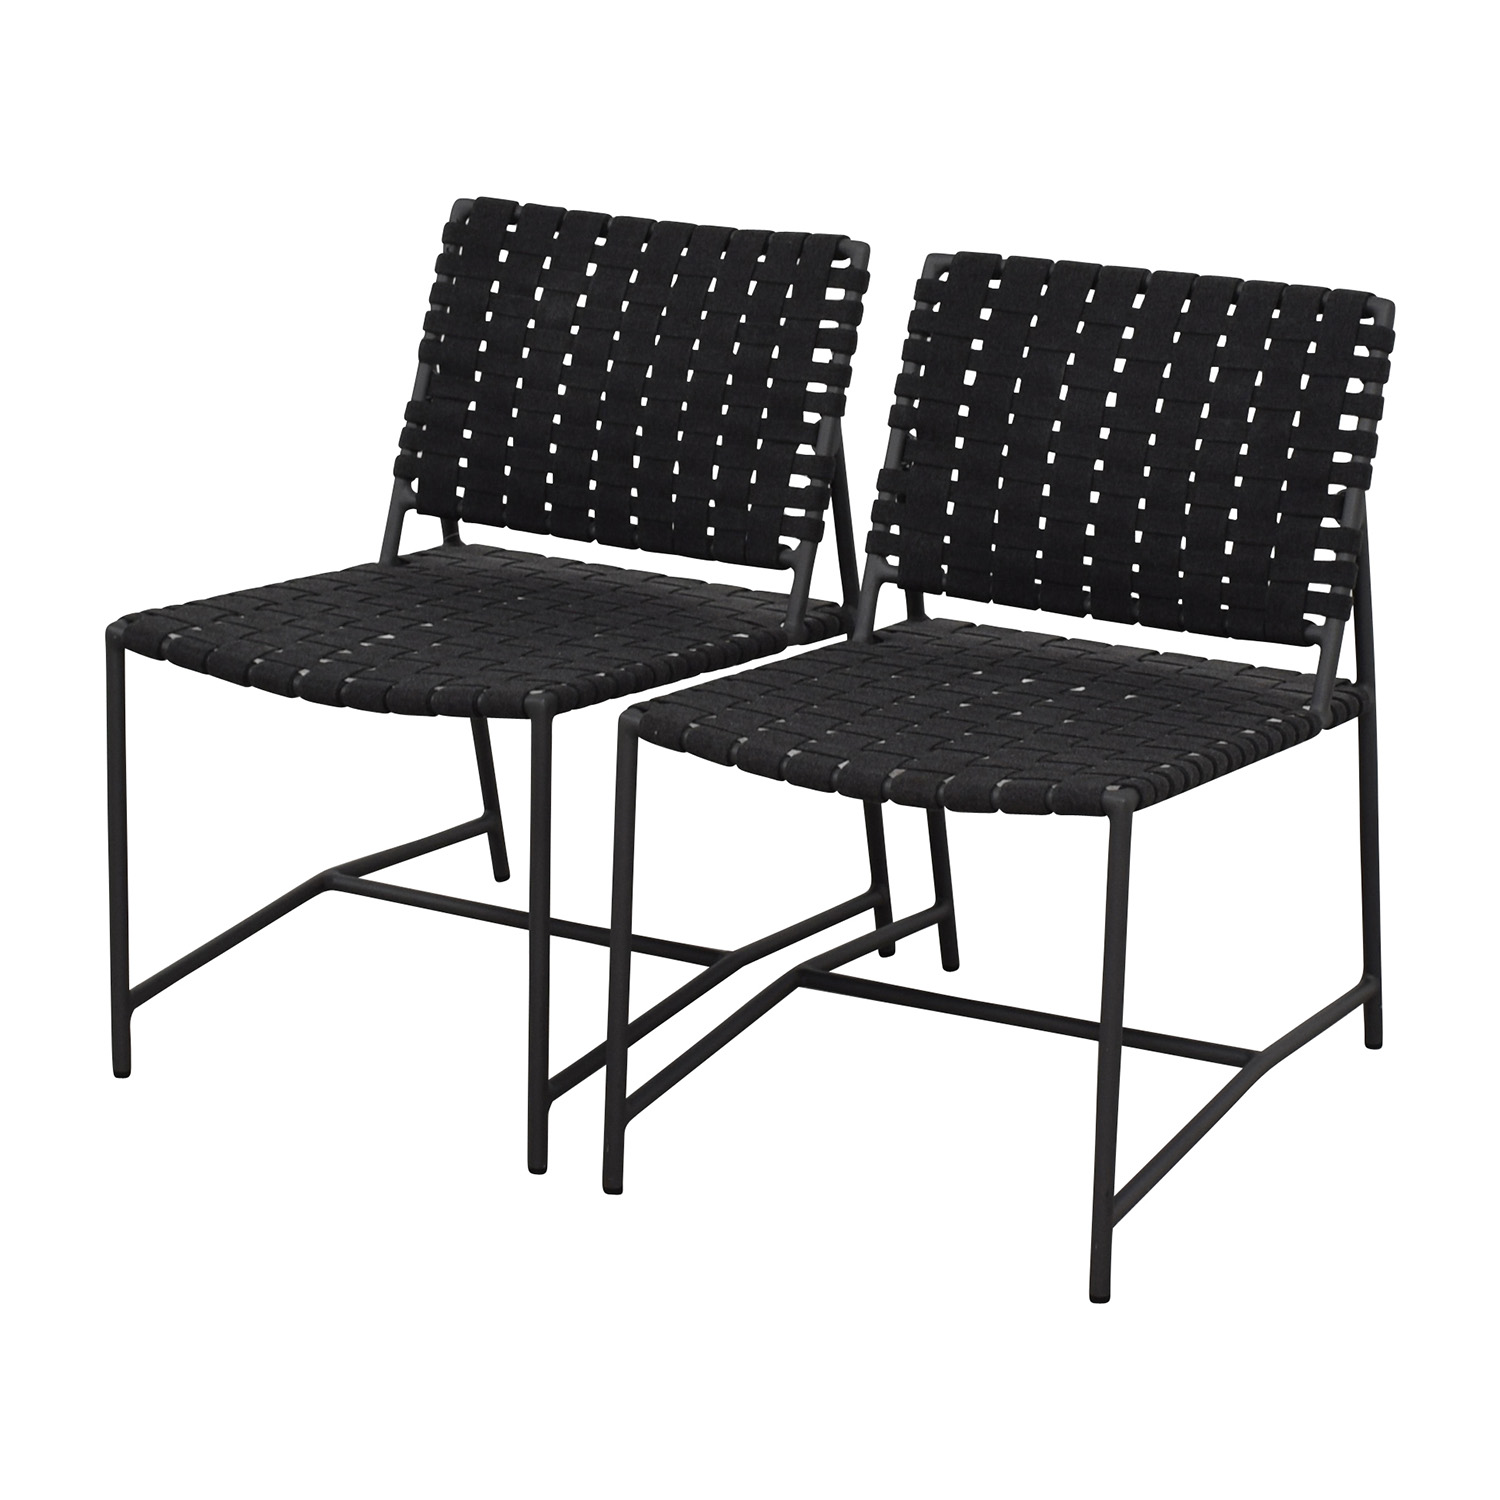 Restoration Hardware Restoration Hardware Dark Grey Woven Outdoor Chairs discount